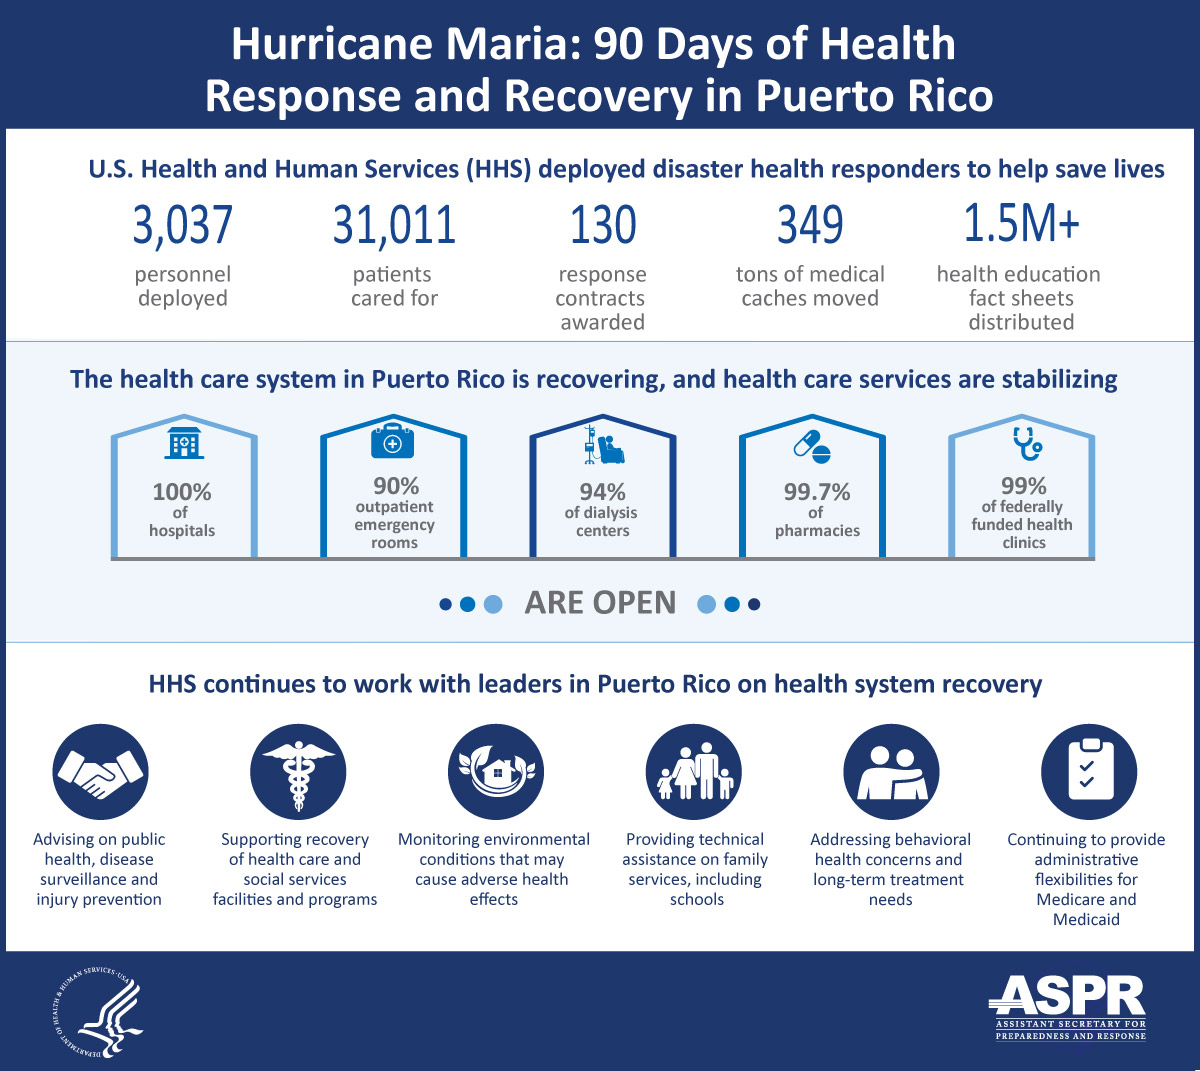 Thumbnail of infographic.  For the full-sized version, see https://www.phe.gov/emergency/events/hurricanes2017/Documents/Health-System-Recovery-PR-English.pdf